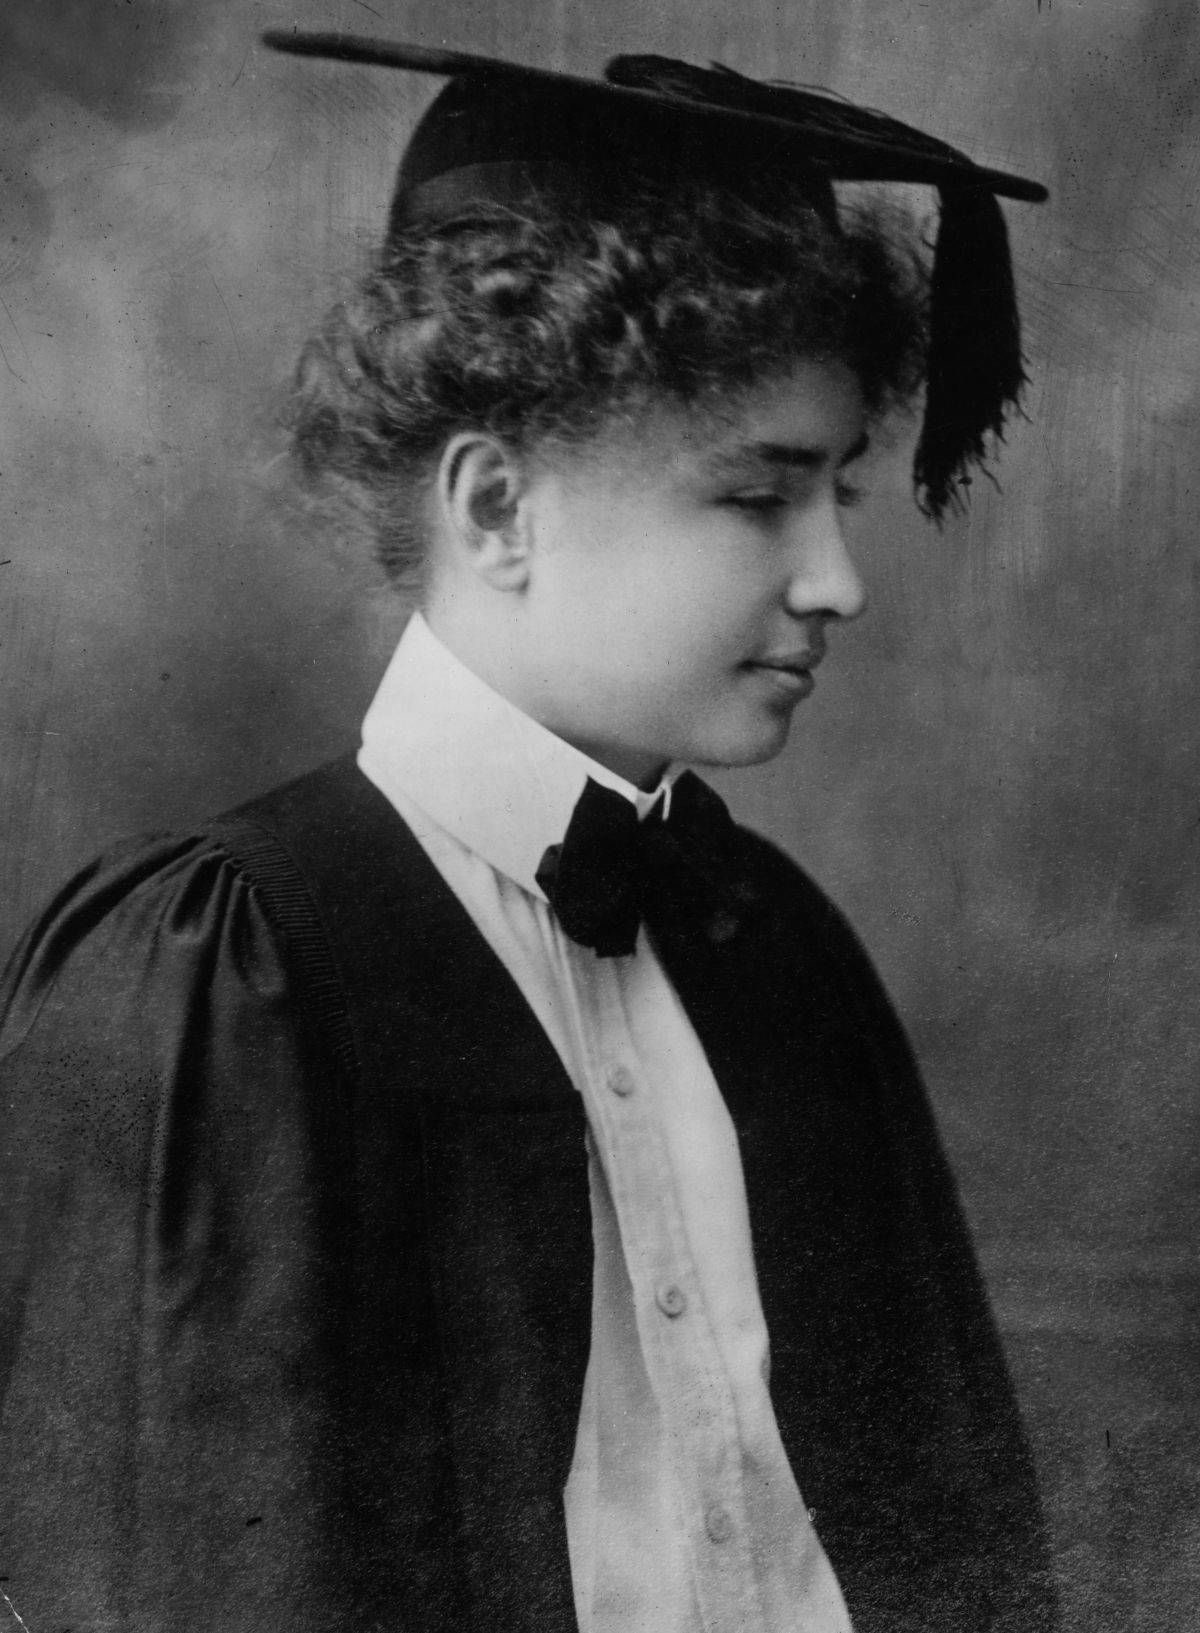 Helen Keller Graduates from College